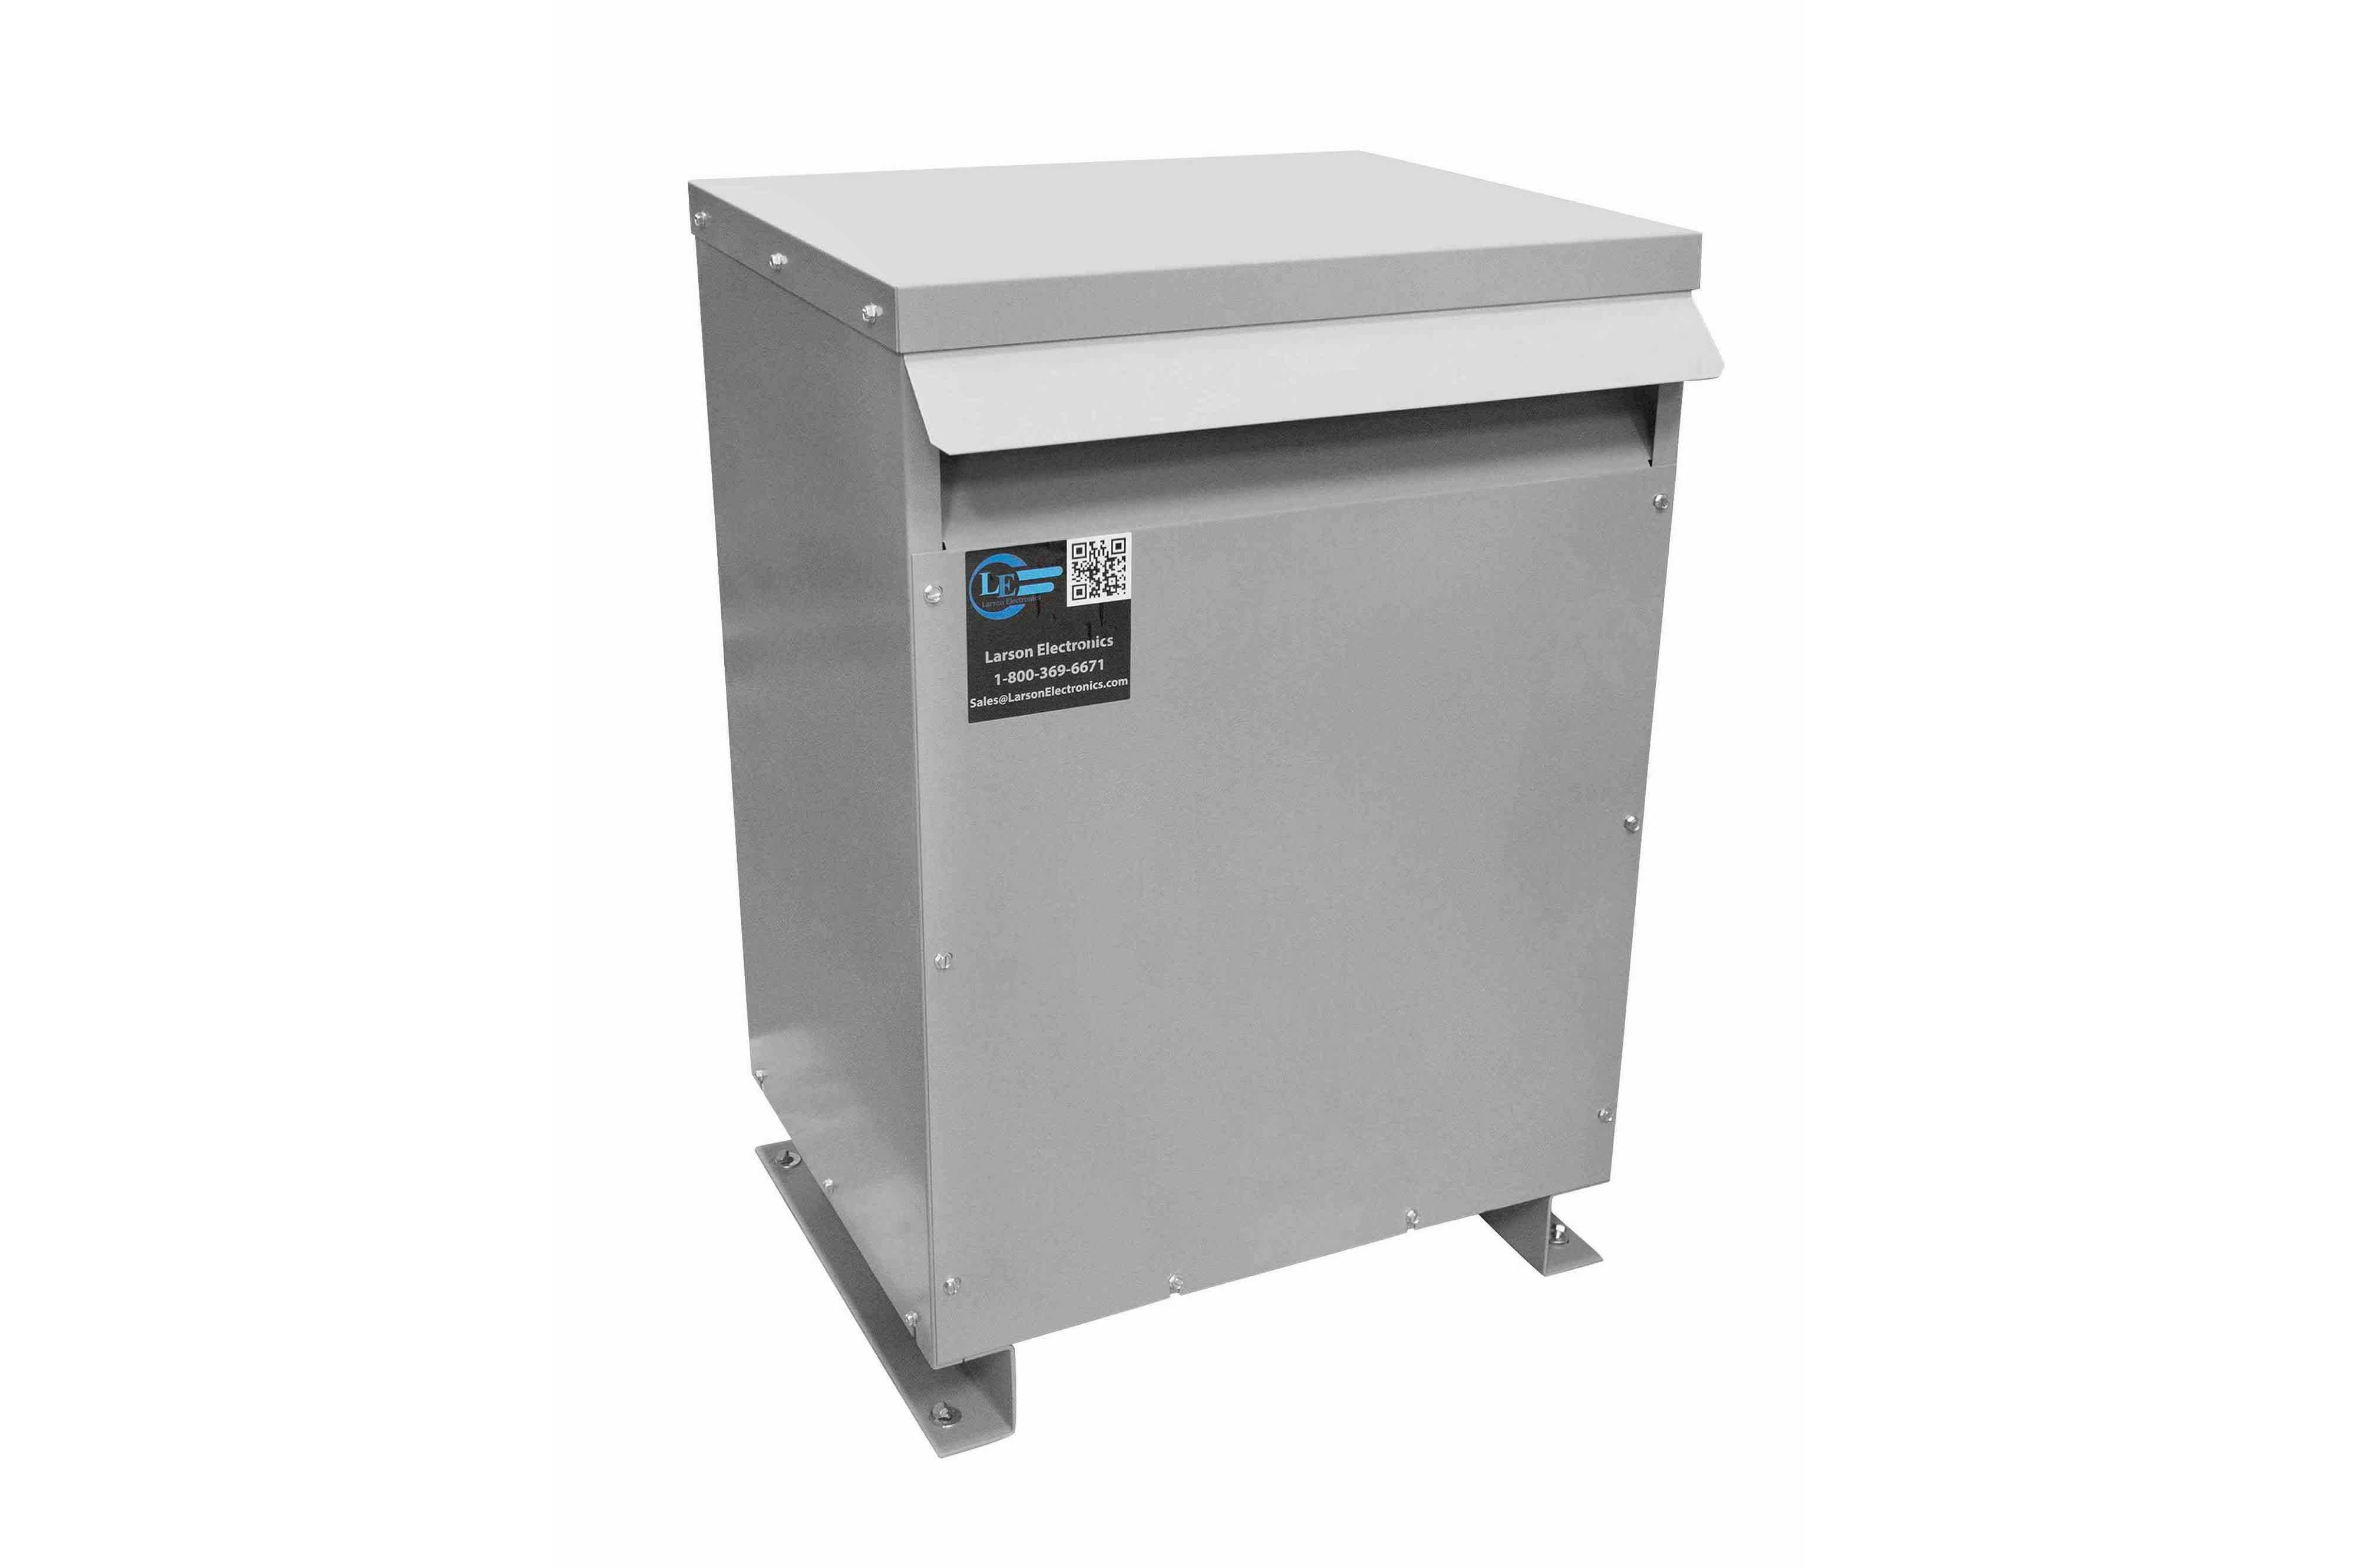 22.5 kVA 3PH Isolation Transformer, 600V Wye Primary, 480Y/277 Wye-N Secondary, N3R, Ventilated, 60 Hz